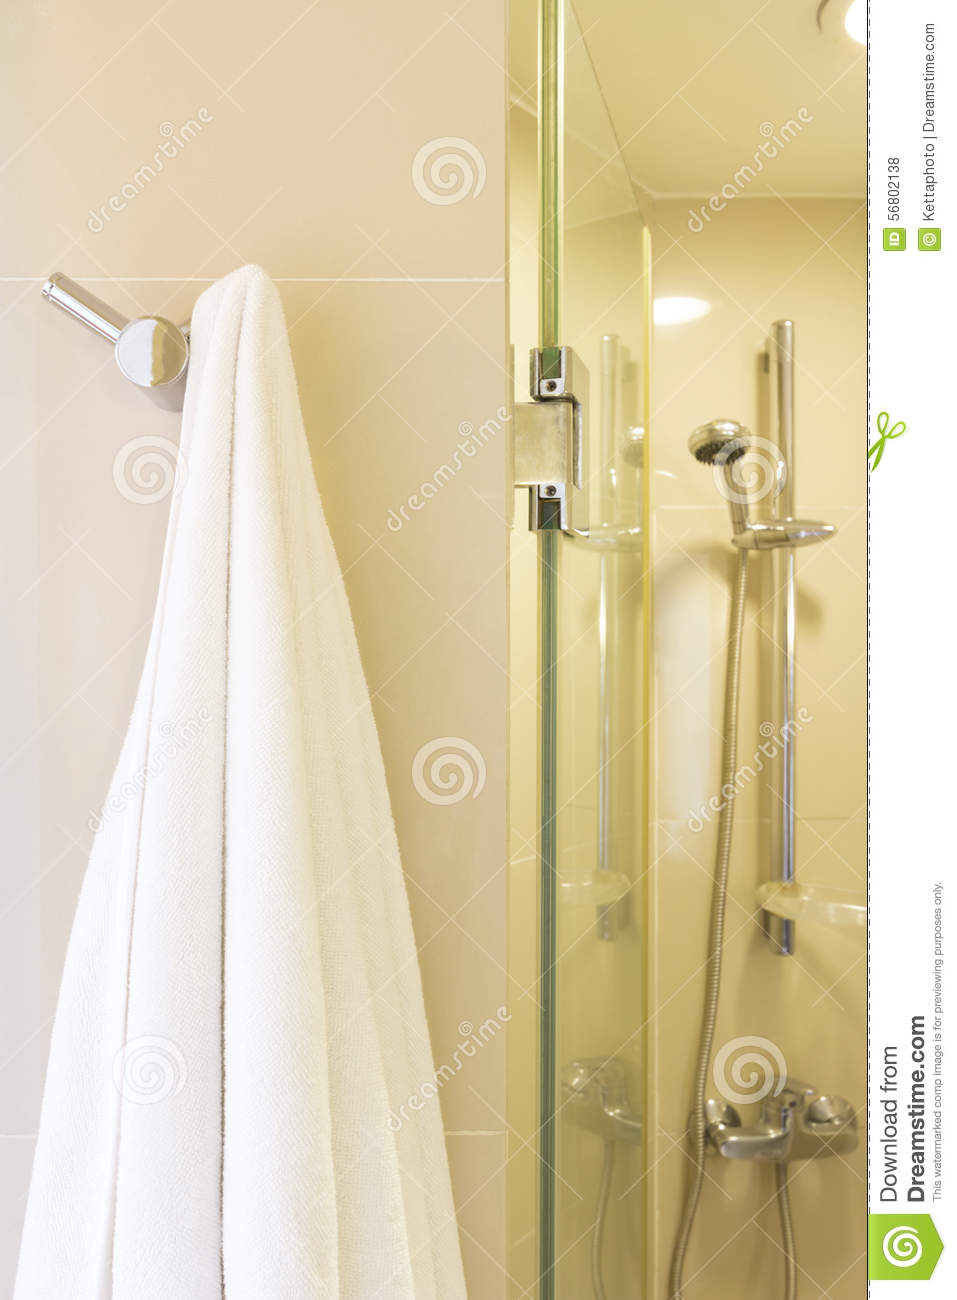 Towels hanging in bathroom stock bath towel rack stock for What to hang on bathroom walls